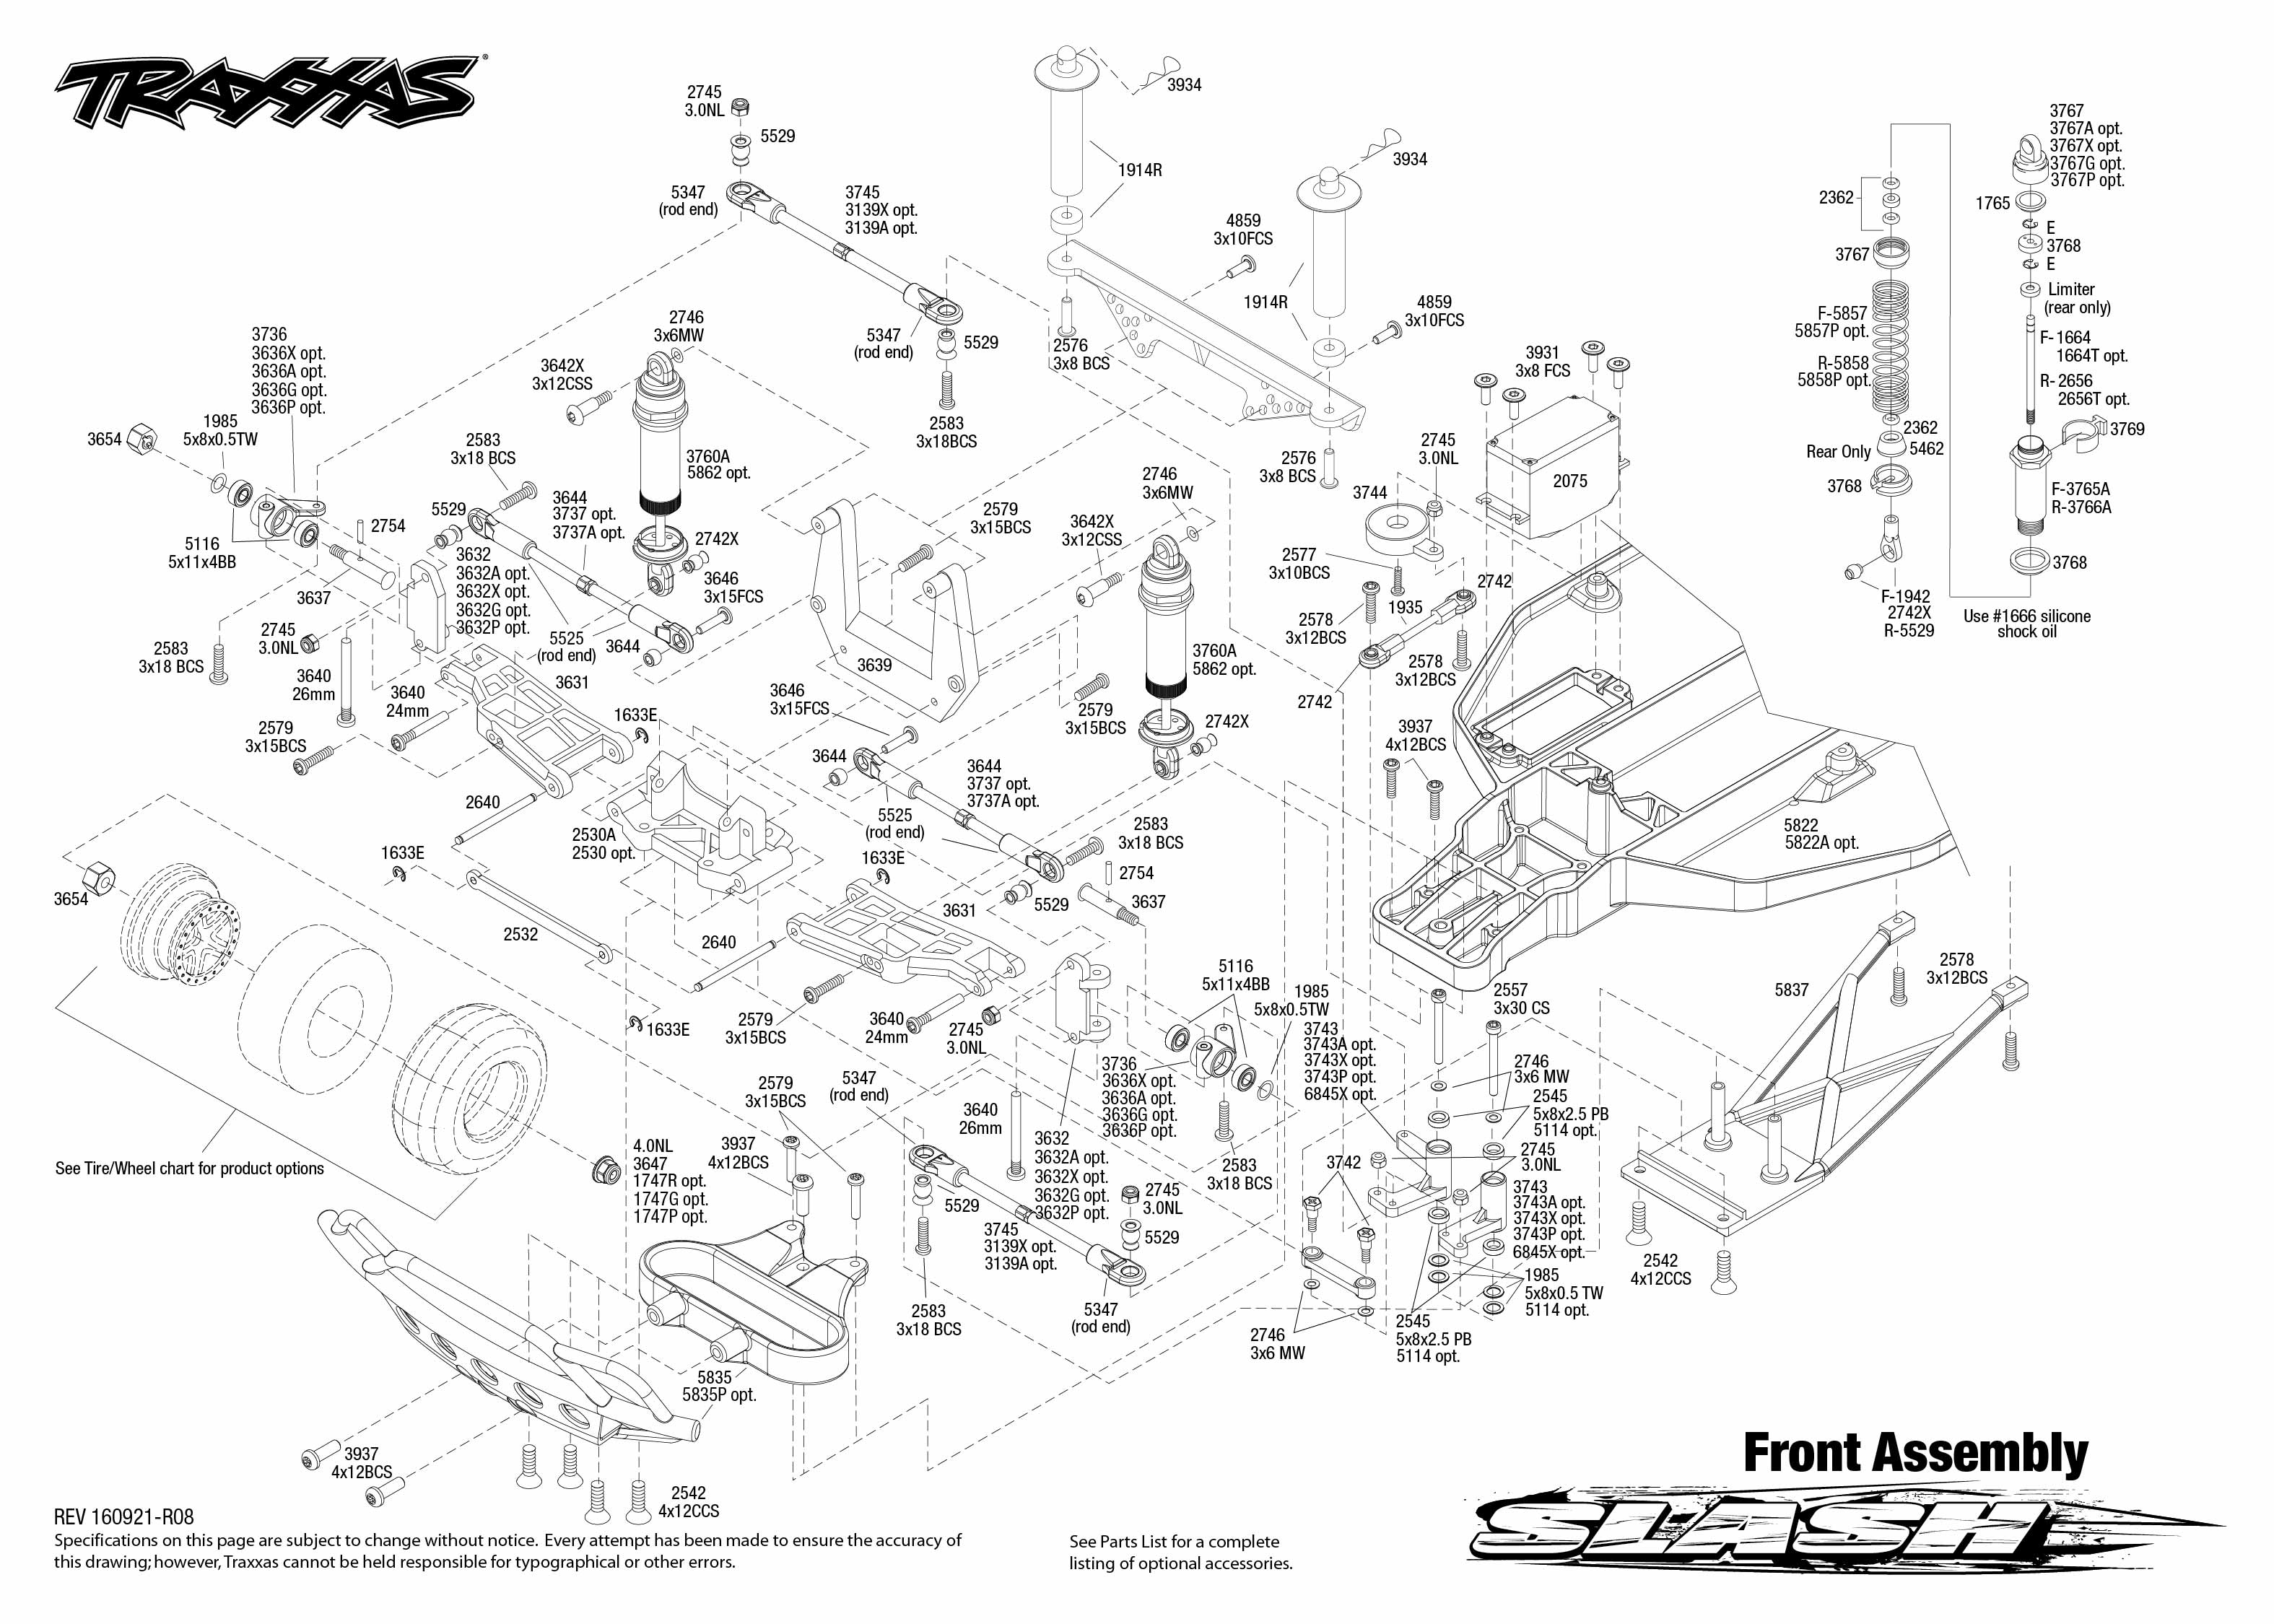 Appealing traxxas revo 3 3 parts diagram gallery best image 100 traxxas revo 3 3 ripit 100 the monster truck bigfoot pooptronica